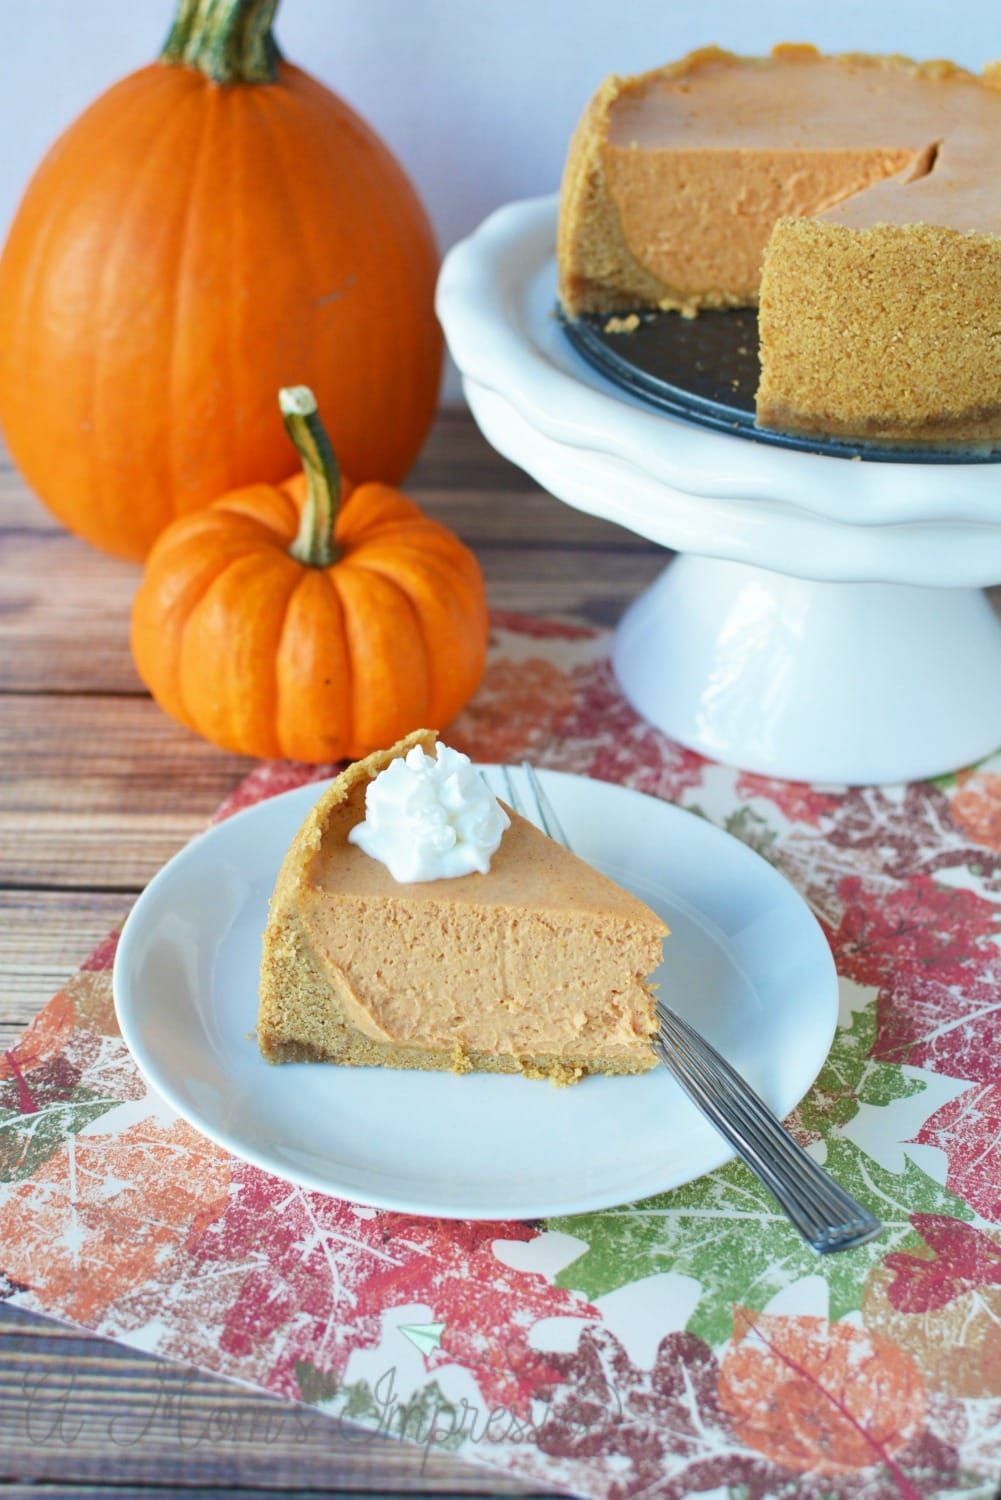 Instant Pot Pumpkin Cheesecake Recipe sitting on a table with two pumpkins.